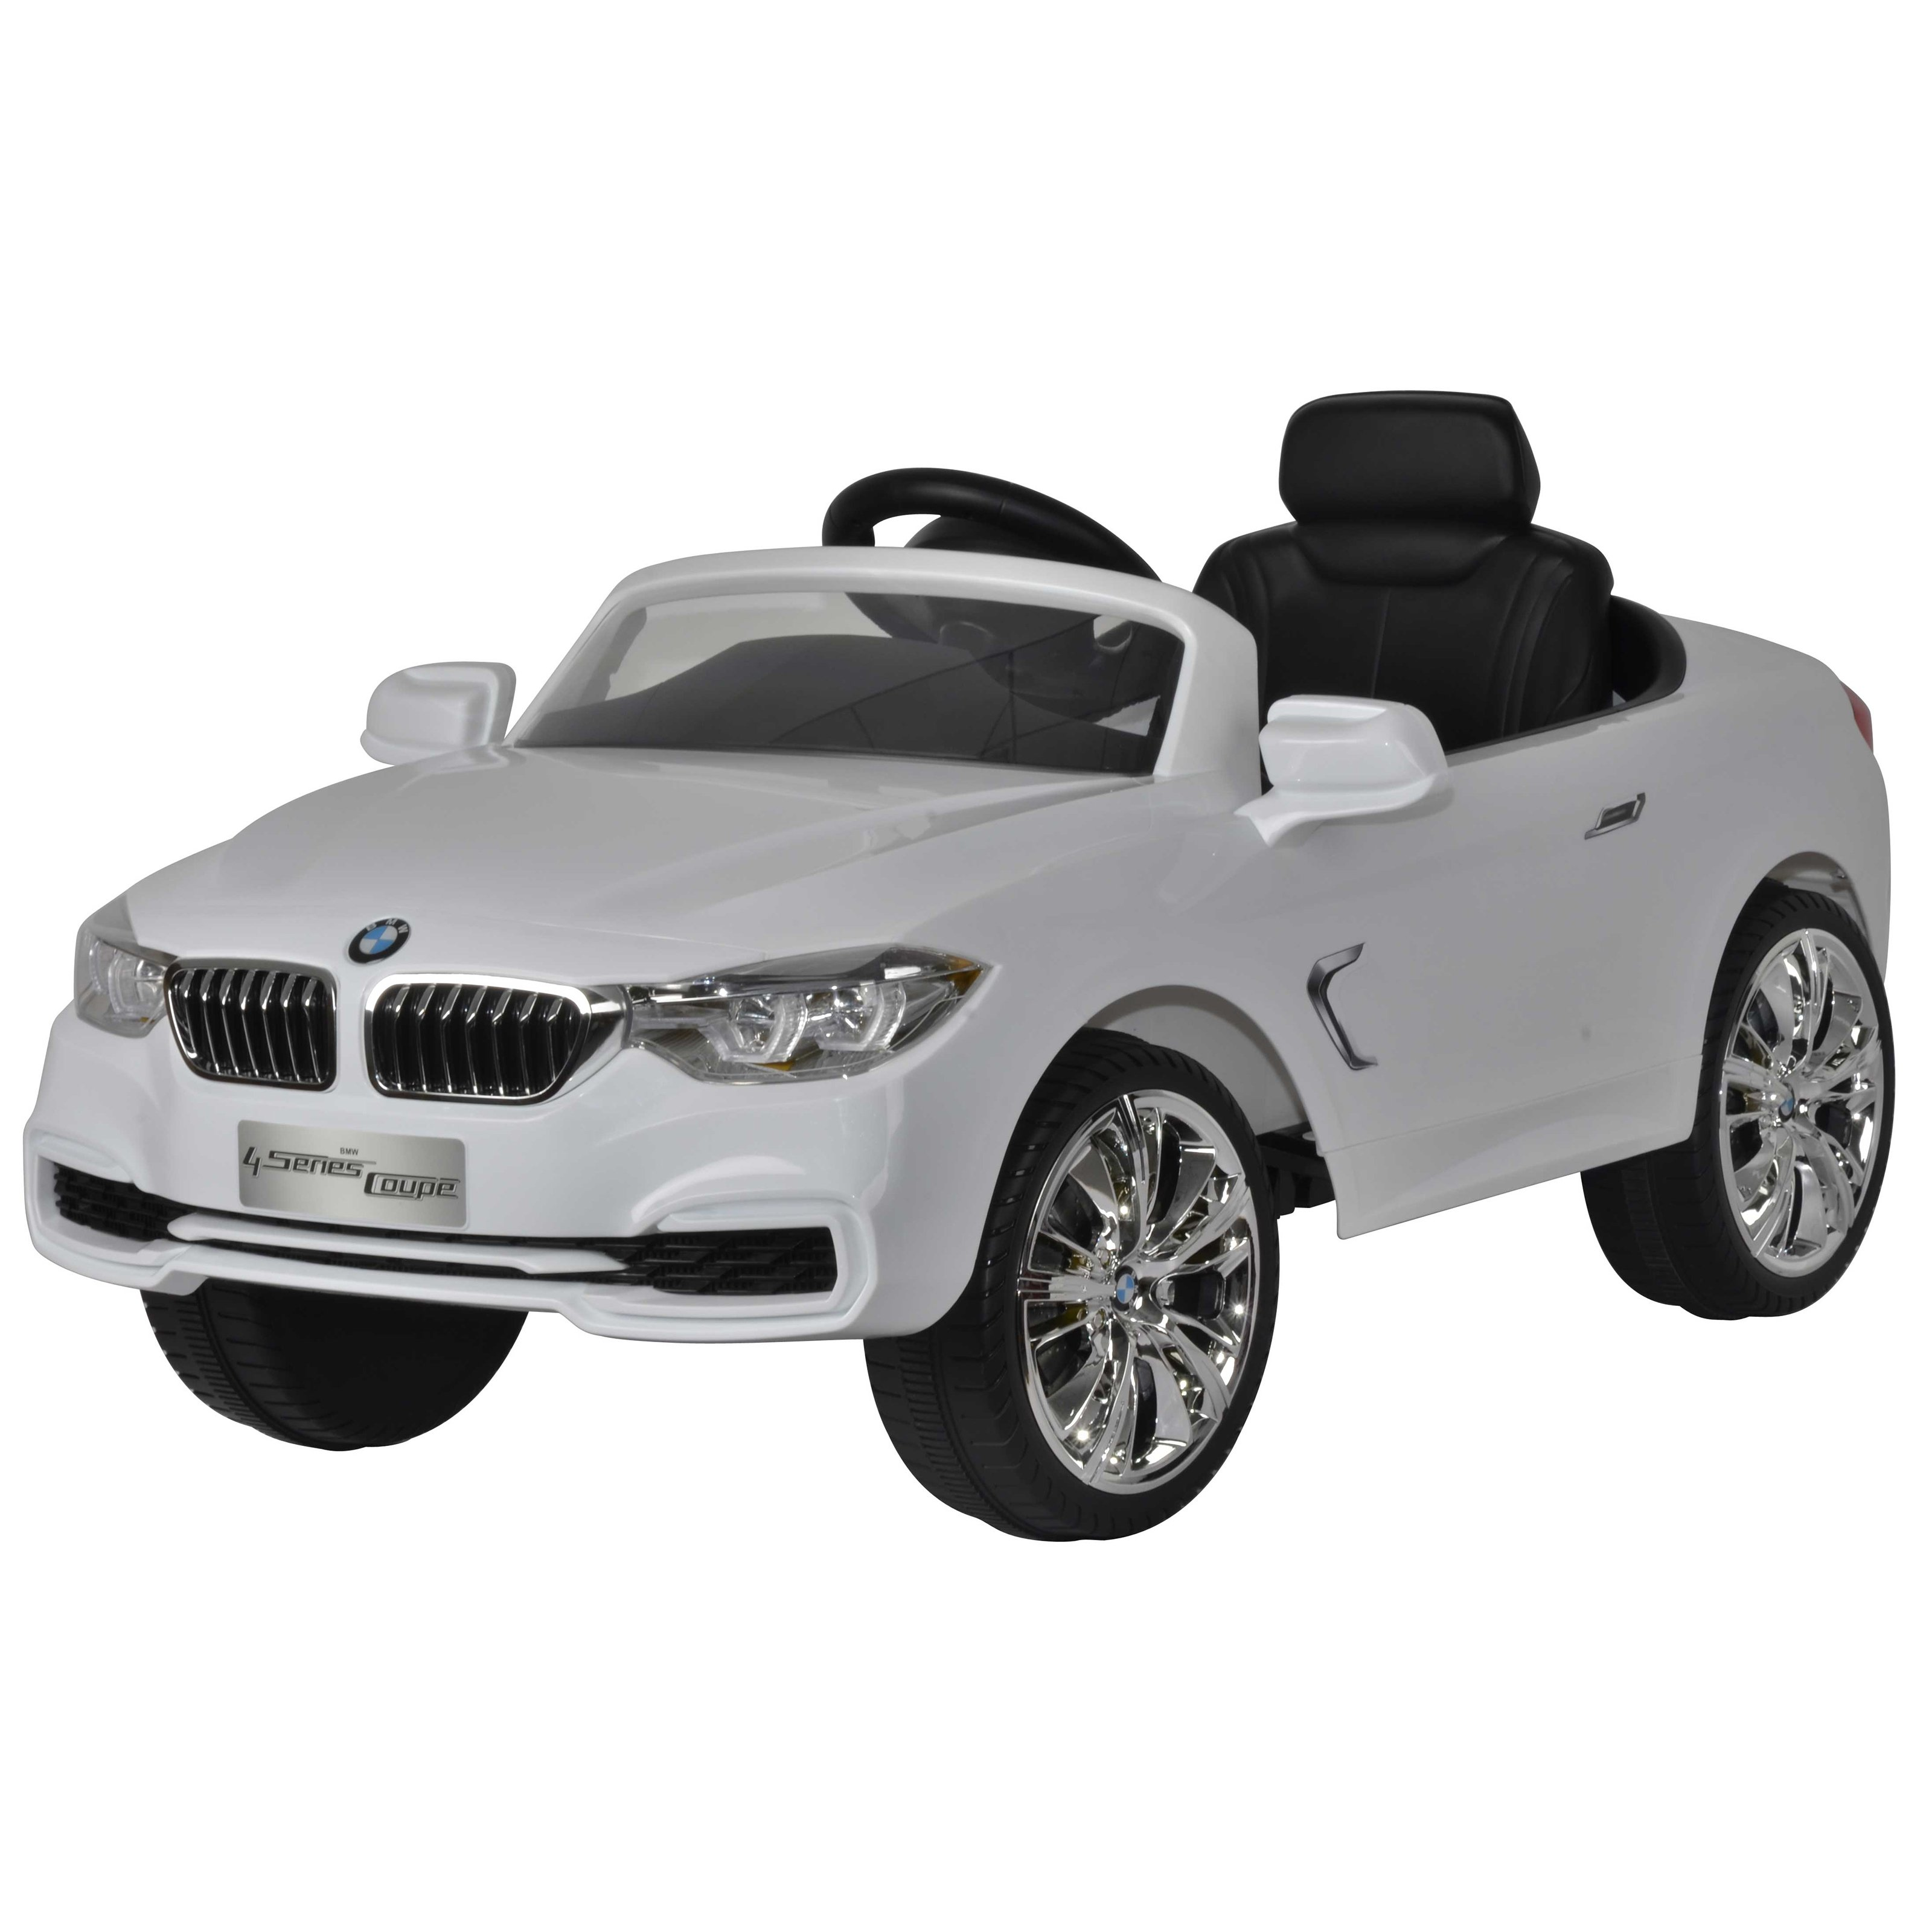 Best Ride on Cars 12V Battery Powered BMW 4 Series Ride On Toy